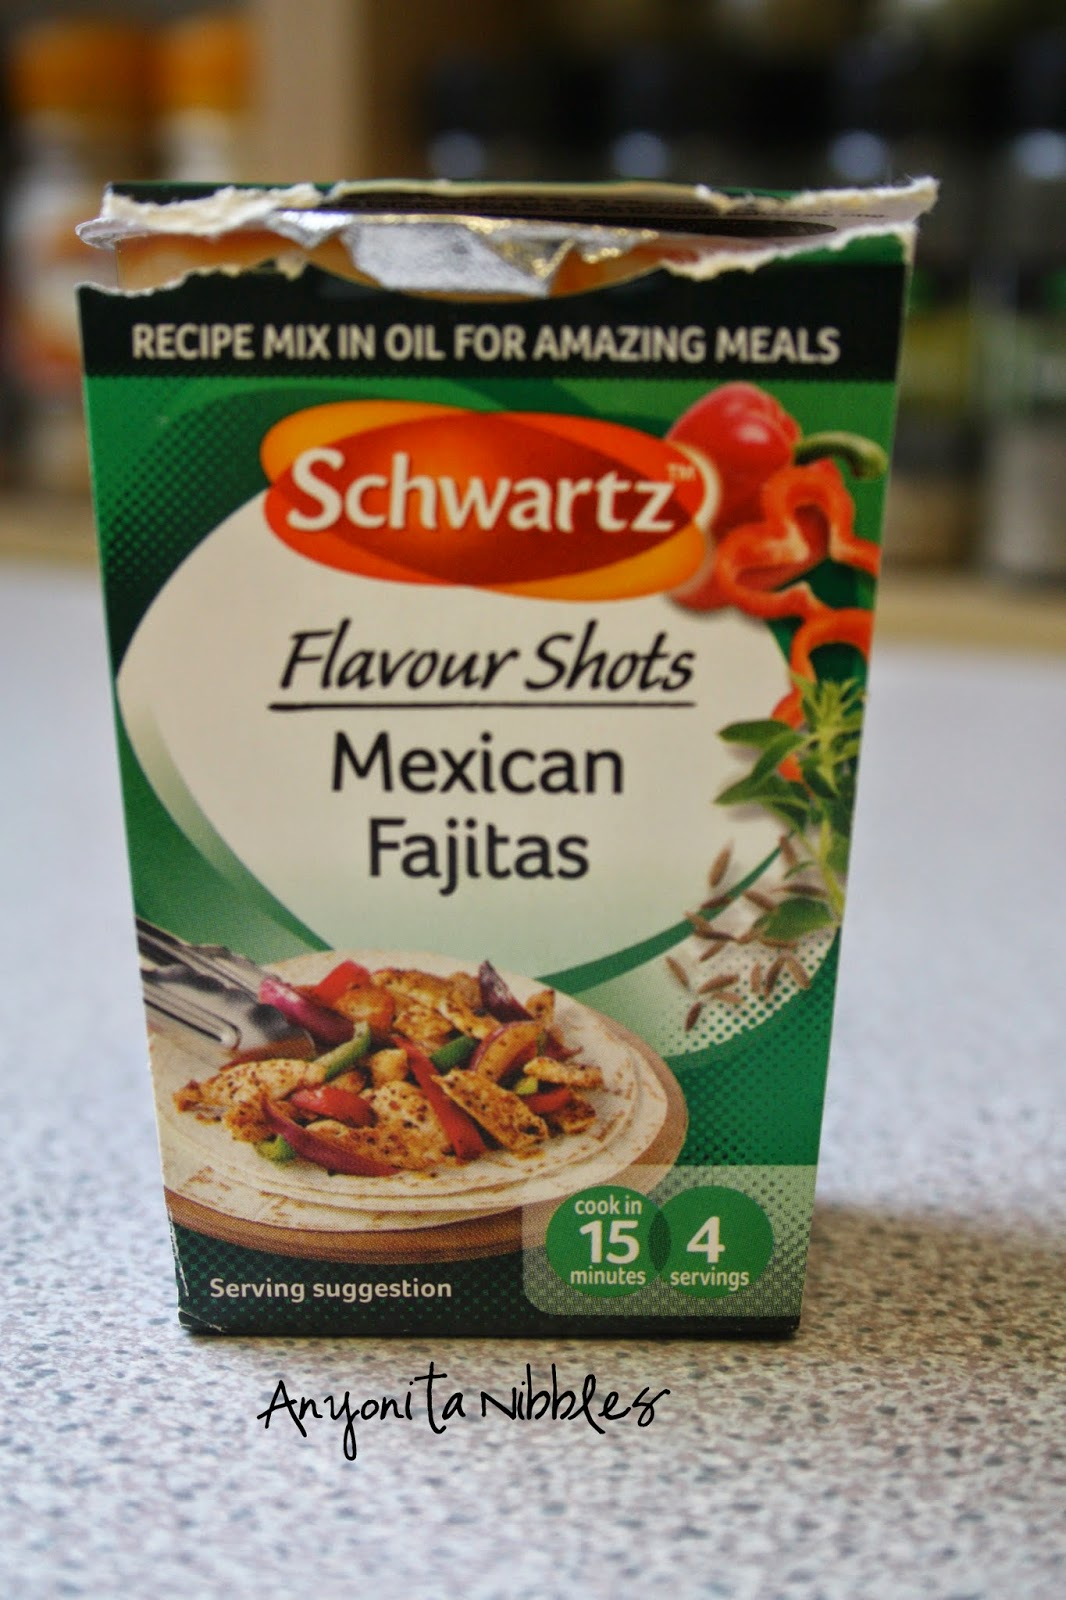 Use this Flavour Shots to make an incredible Mexican dinner